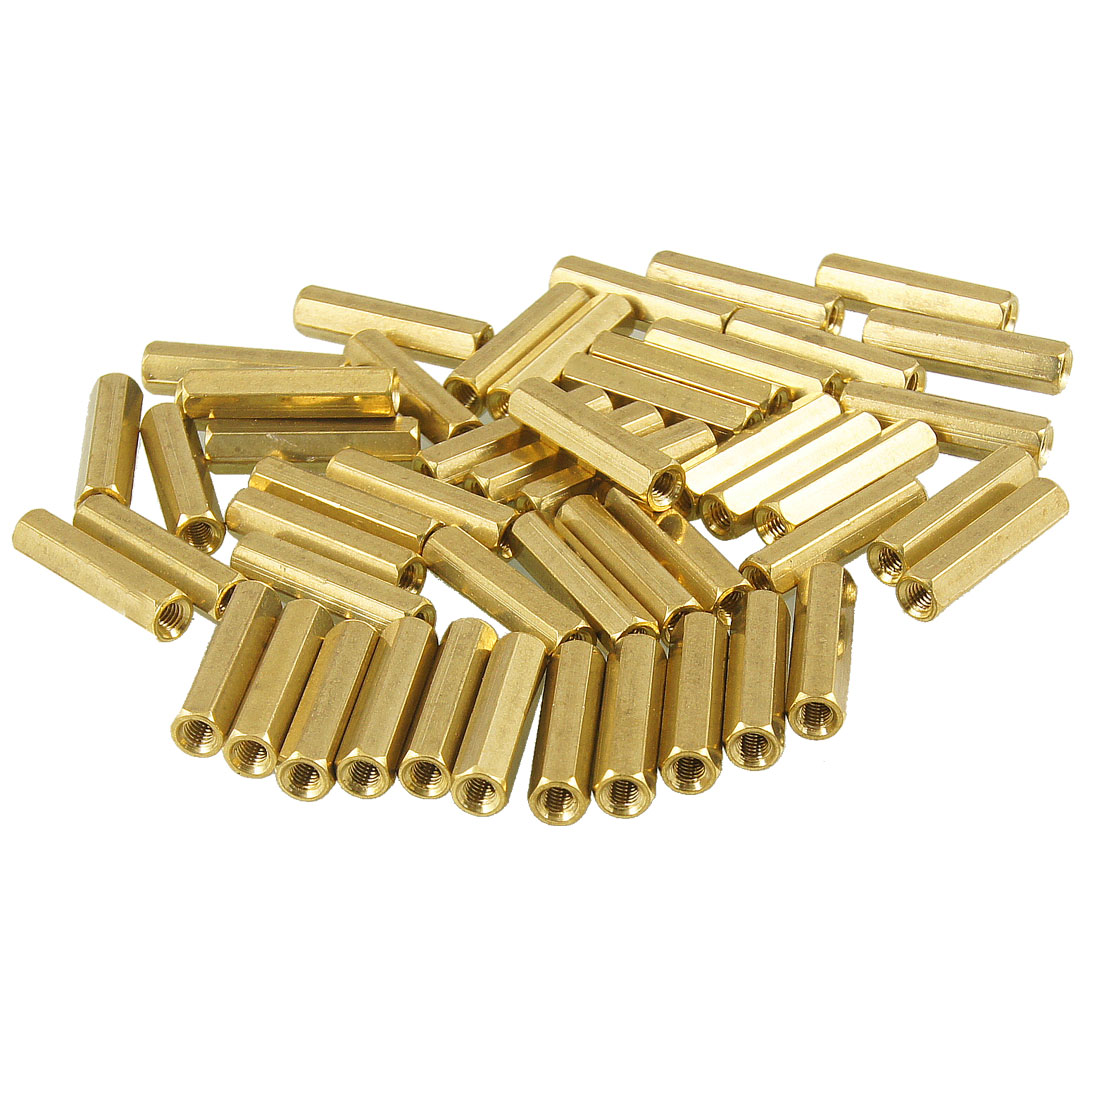 50 Pcs M3X20mm Gold Tone Hexagonal Female Thread Standoff Spacer